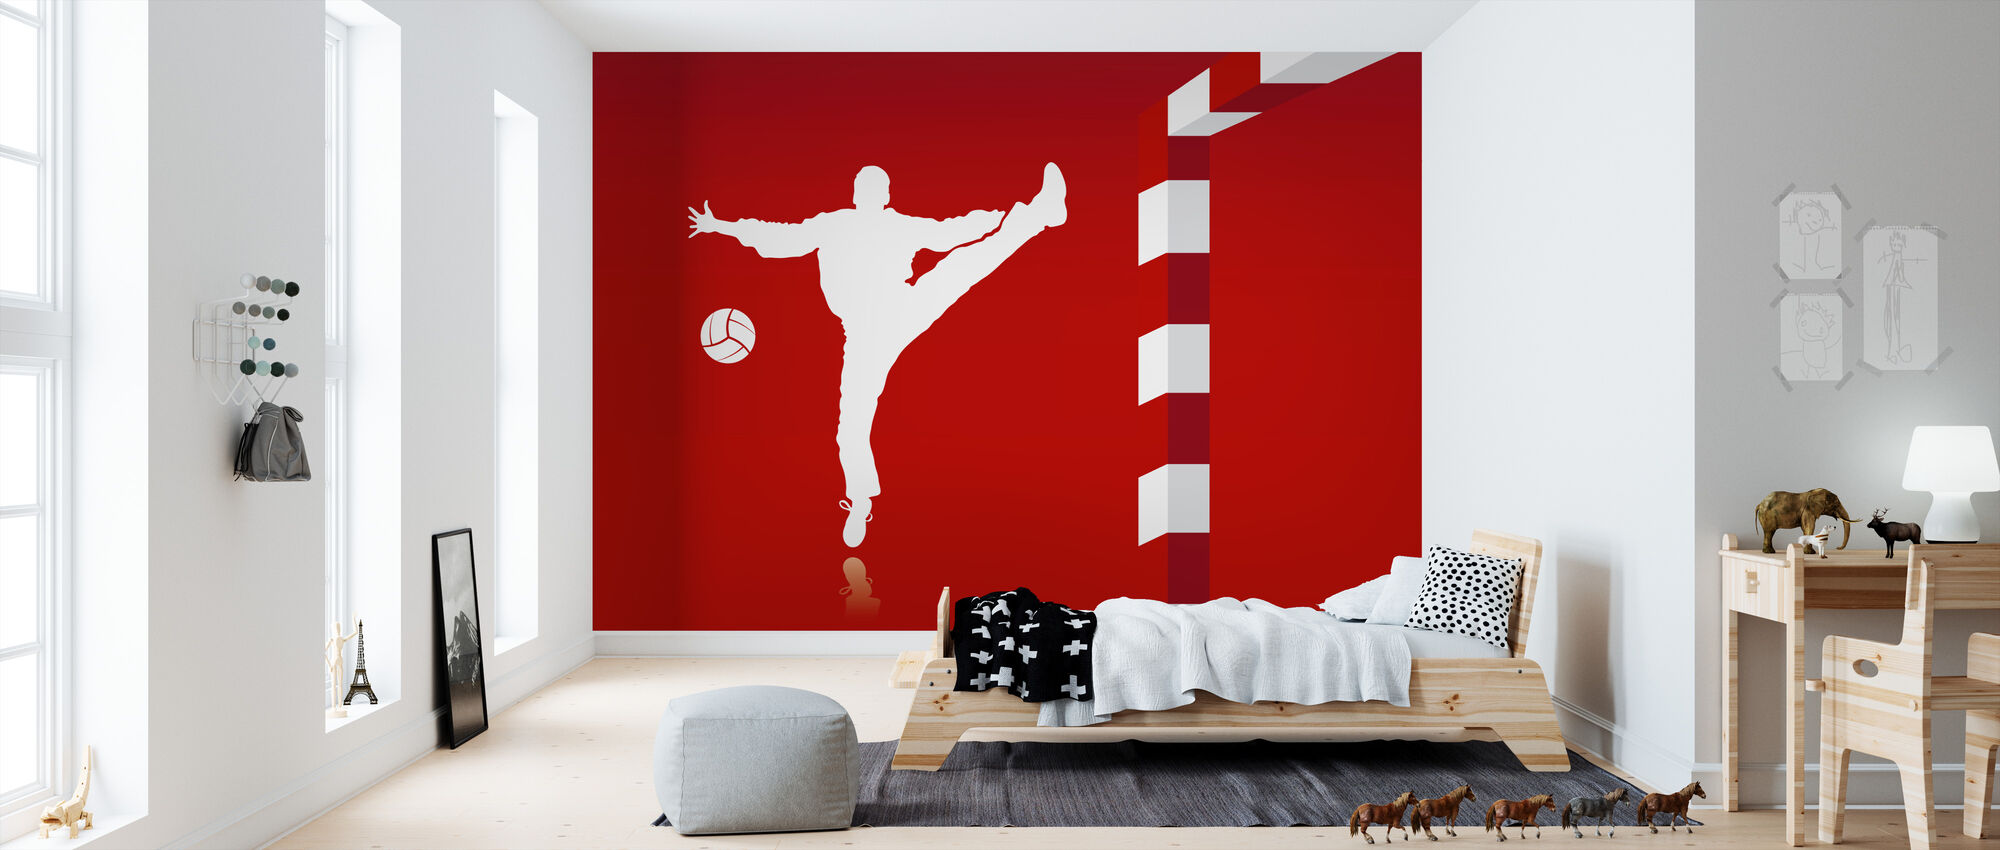 Handbal - Rood - Behang - Kinderkamer